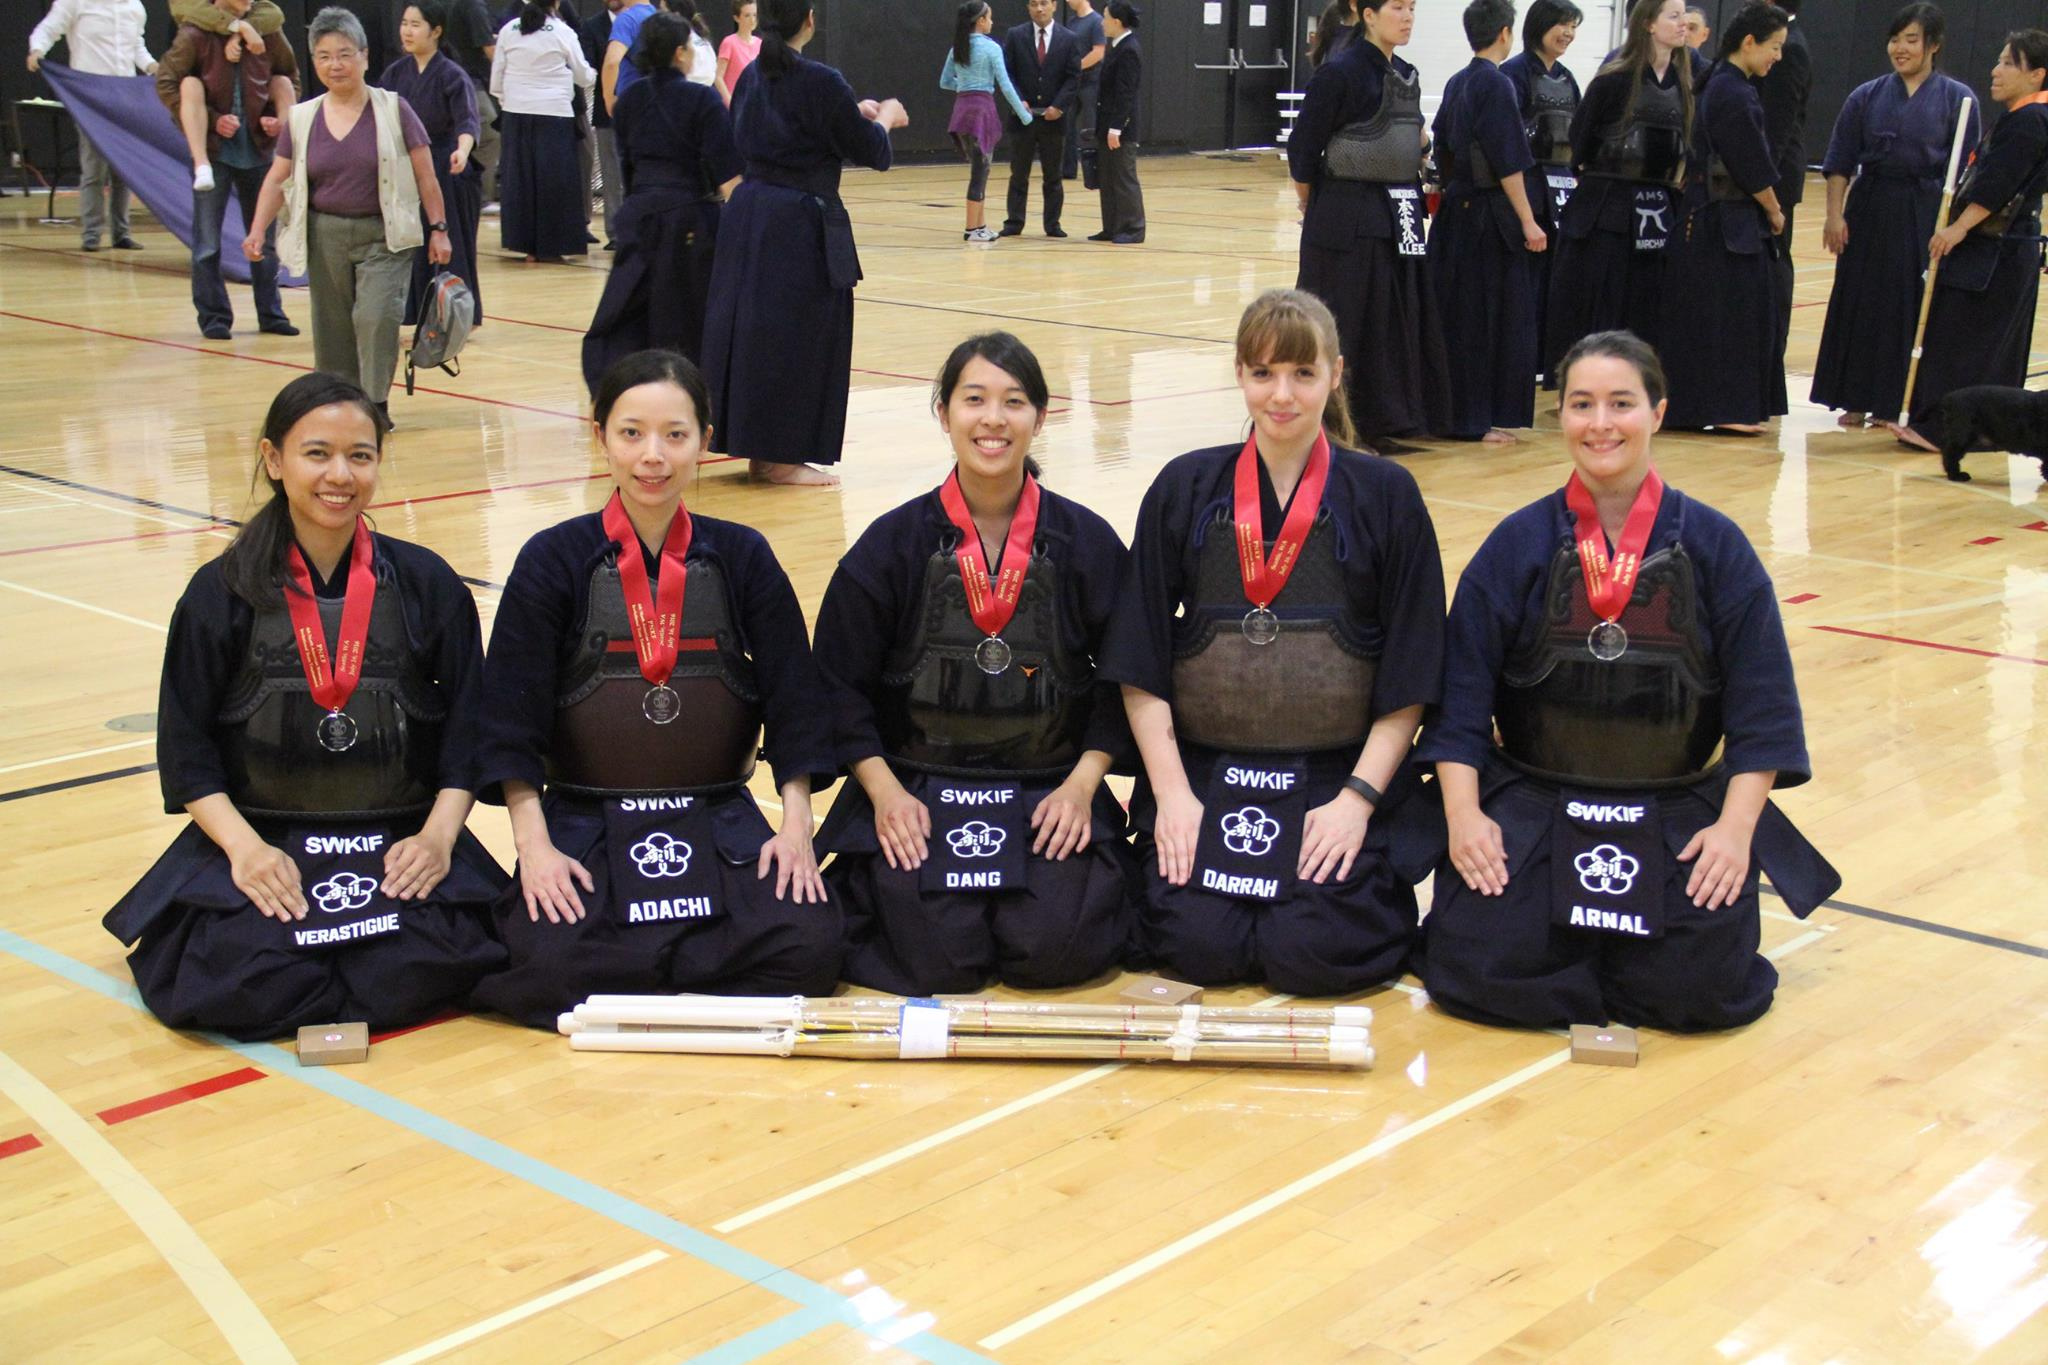 SWKIF Ladies - 2nd place in team division - The 6th PNKF North American Women's Kendo Taikai - Seattle, WA